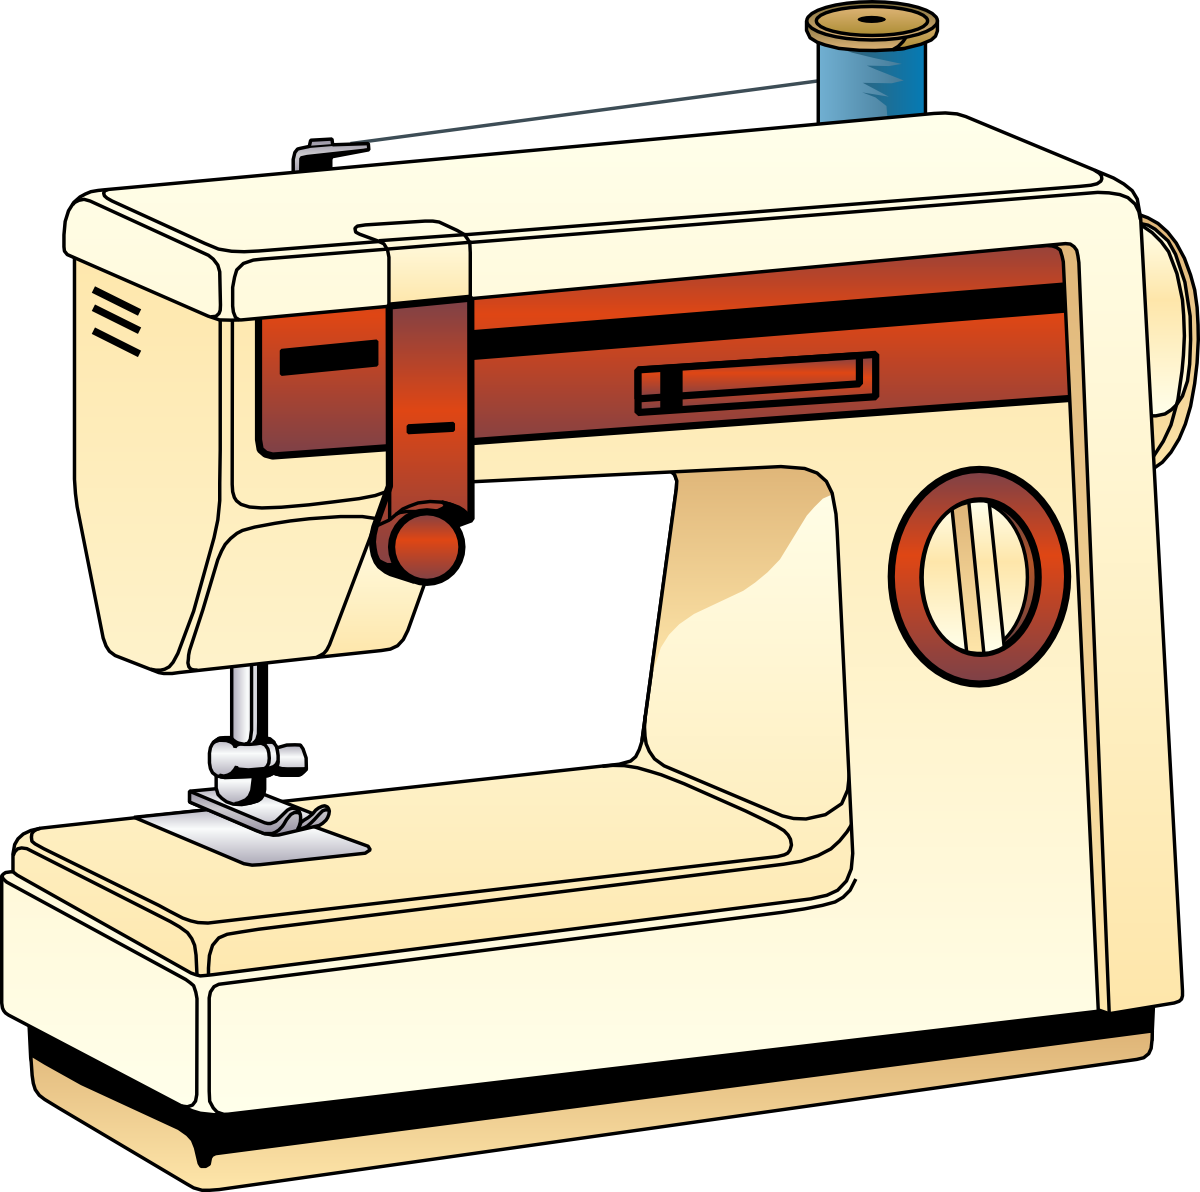 Tool clipart kid. Sewing machine